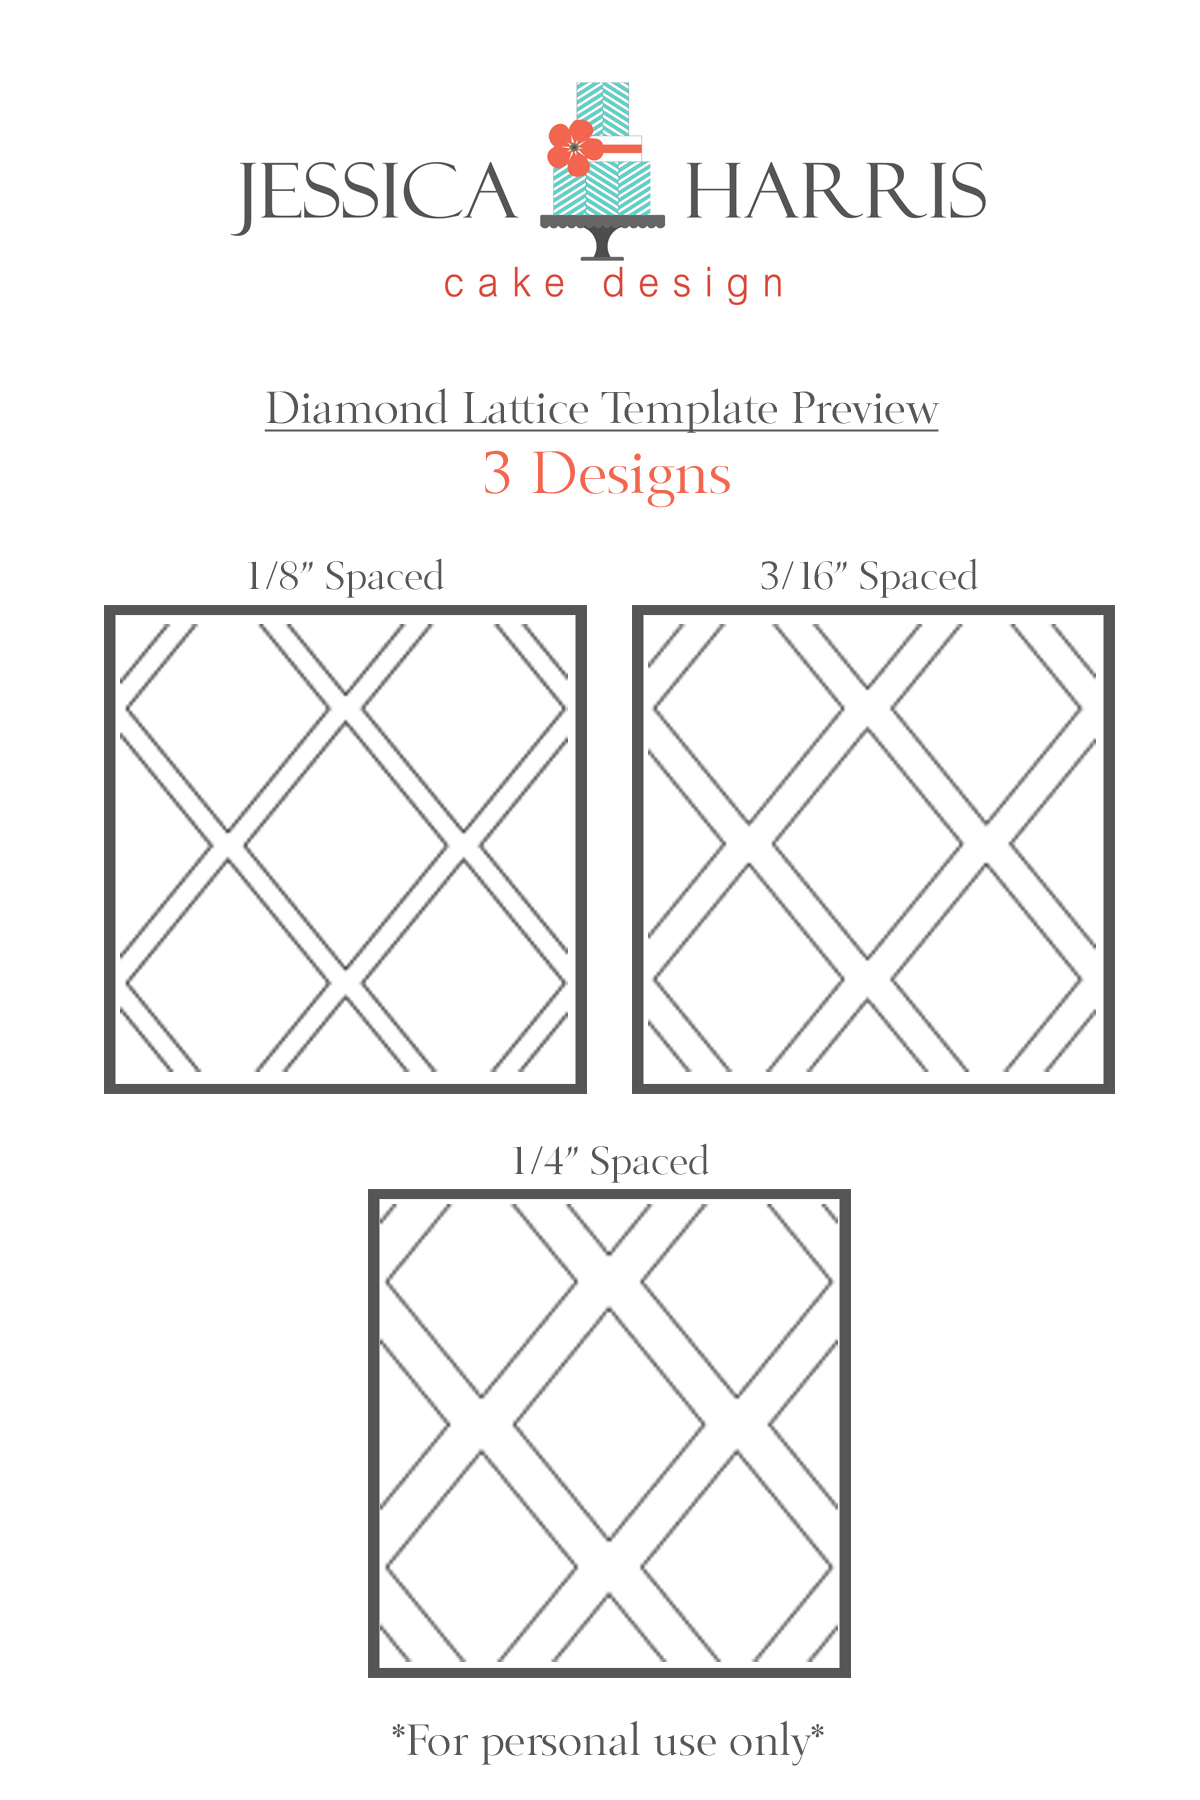 Diamond Lattice Cake Template - 3 Designs - Jessica Harris Cake Design